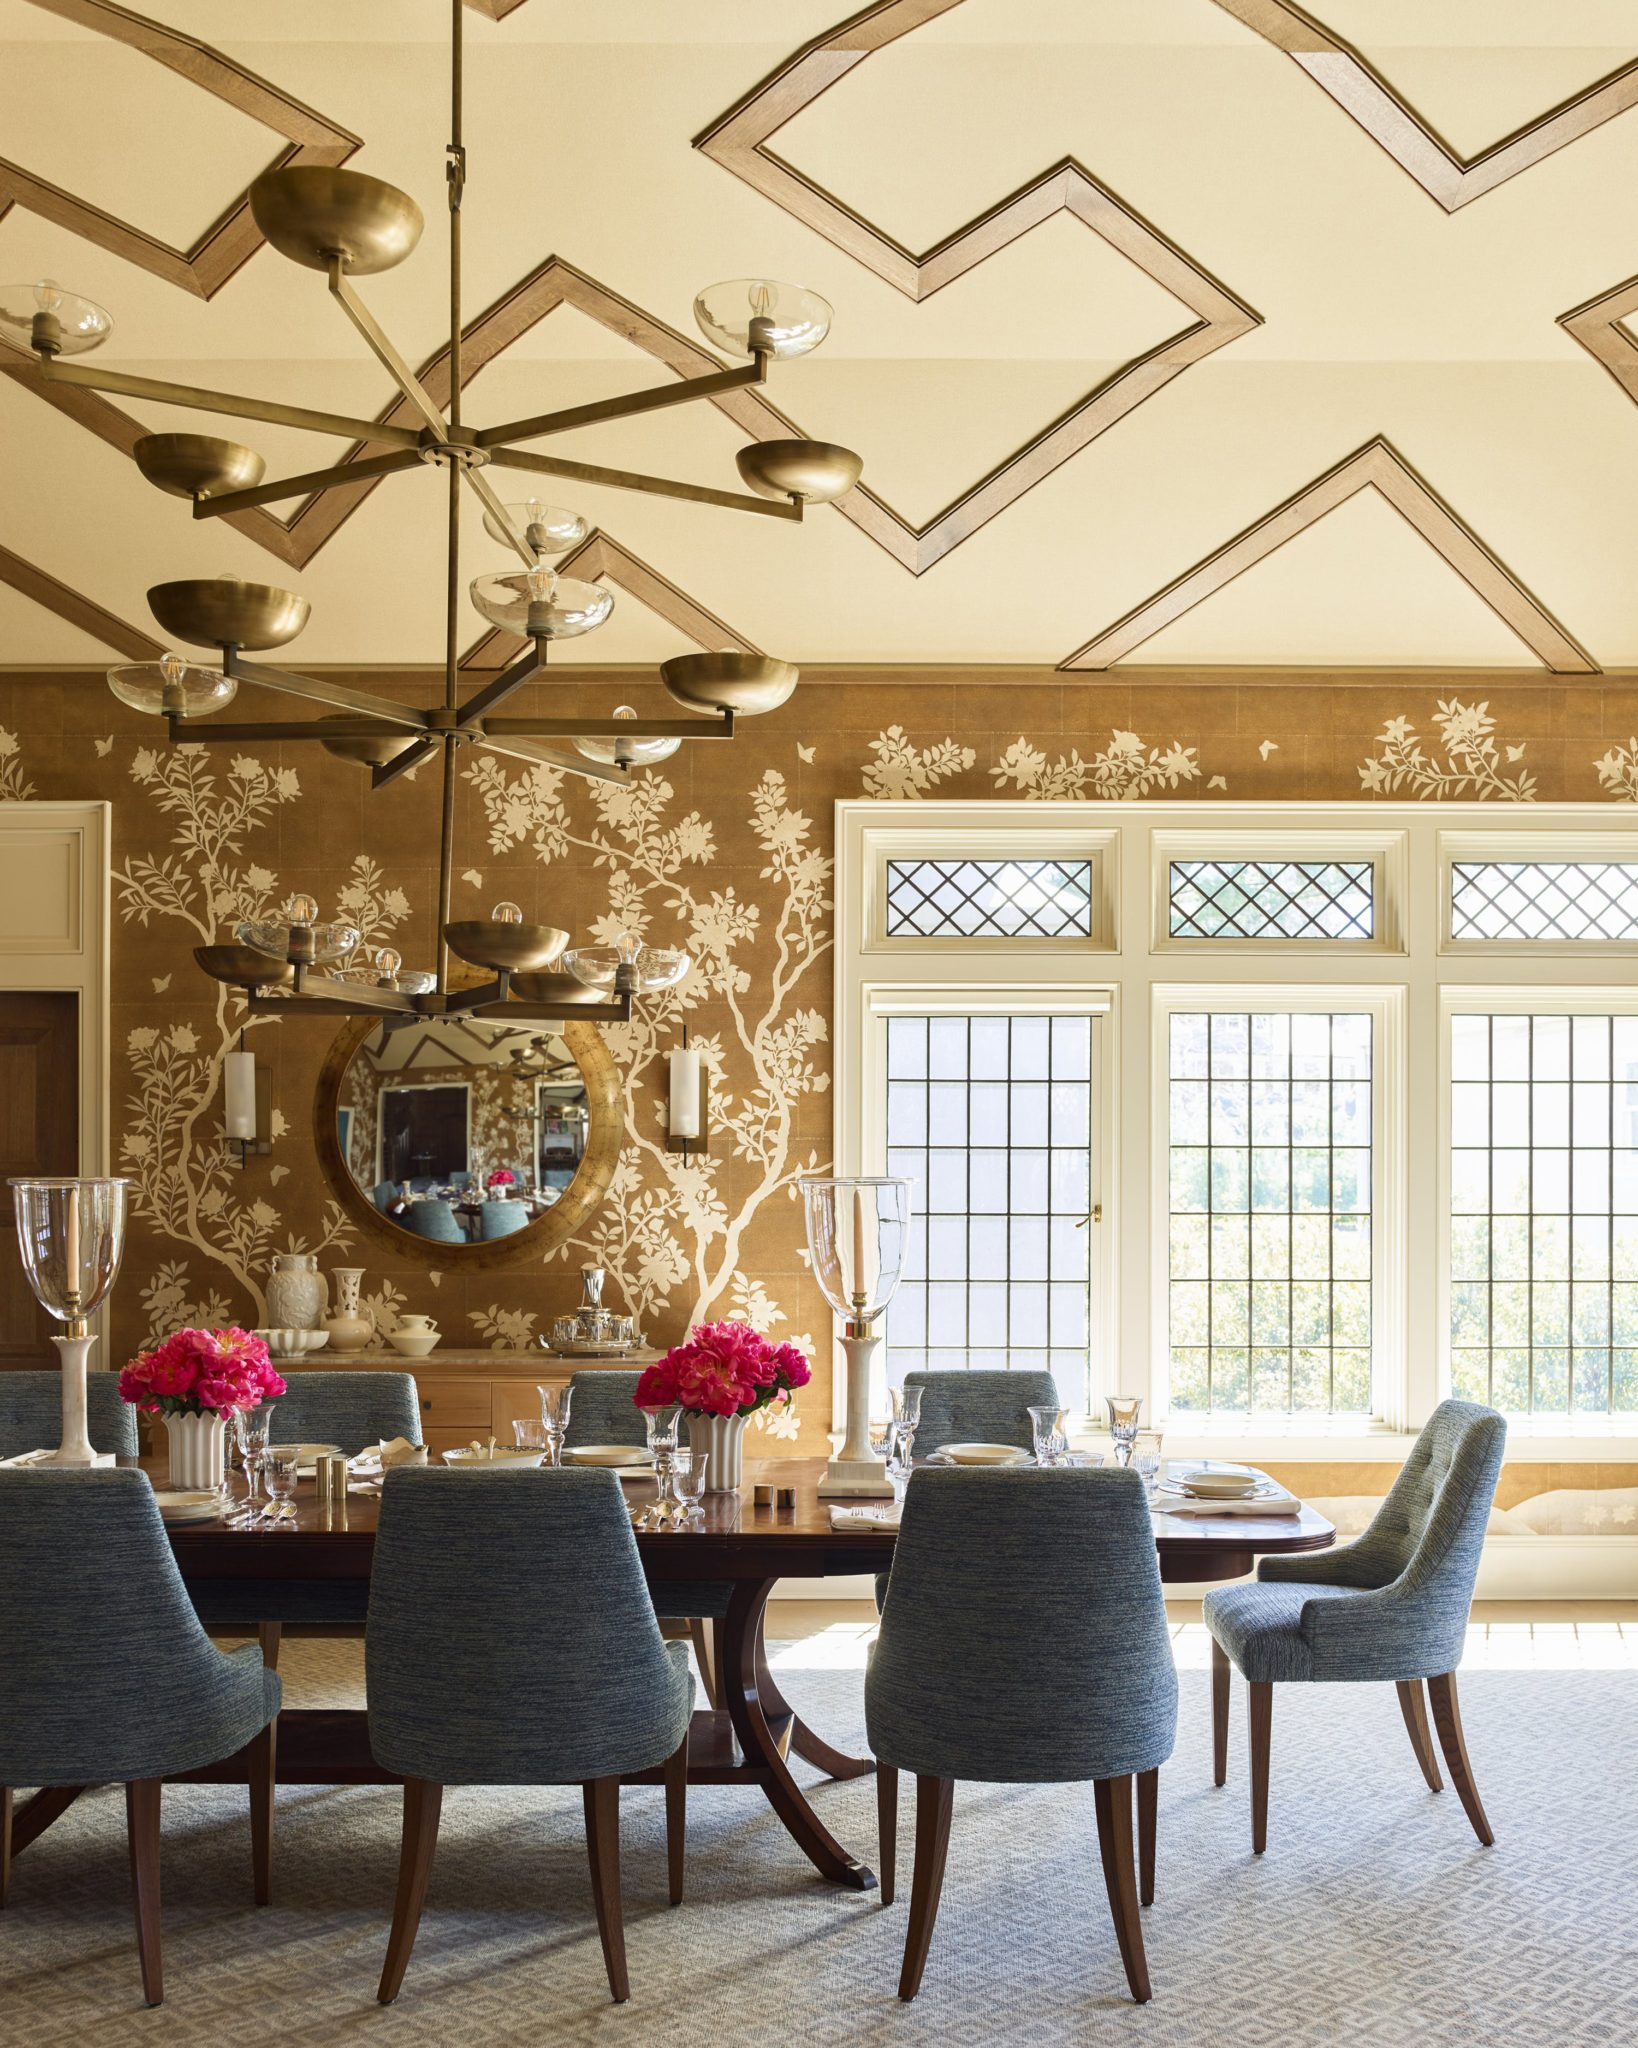 """4. Create a Conversation Starter   Design a space that draws intrigue and promotes conversation among guests, whether it's with unique artwork, bold wallpaper, or custom furnishings.""""Consider what is going to spark great conversation,"""" says Gideon Mendelson, founder of the Mendelson Group. """"The uniqueness of this room partly comes from how we handled the faceted ceiling.""""The team uniquely arranged paneling on the ceiling, adding texture and color to the space. Inspired by the pattern in the rug, Mendelson says that the idea to create the one-of-a-kindceiling came to him organically. """"We were looking at textiles while working on the architecture of the rooms, andwe always like the looks of a repetition of forms at different scales,"""" he says."""